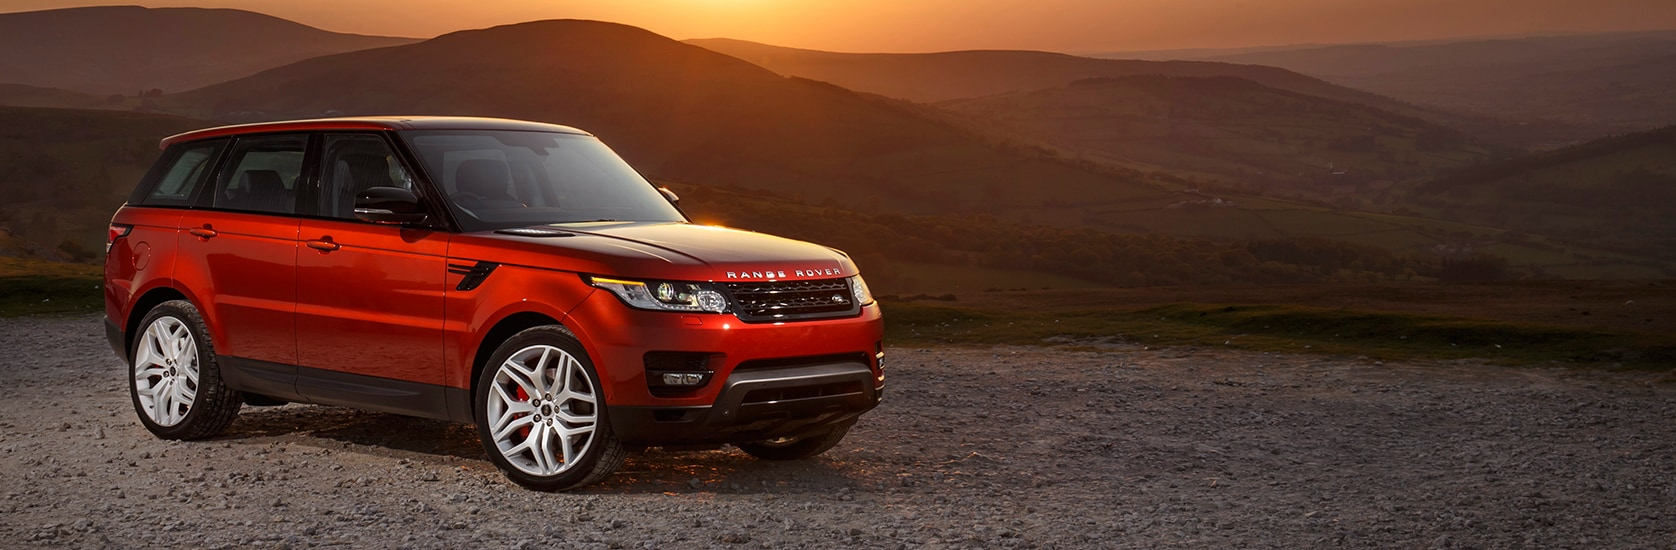 specials rangerover offer se landrover shared rover land offers range lease hse diesel sport